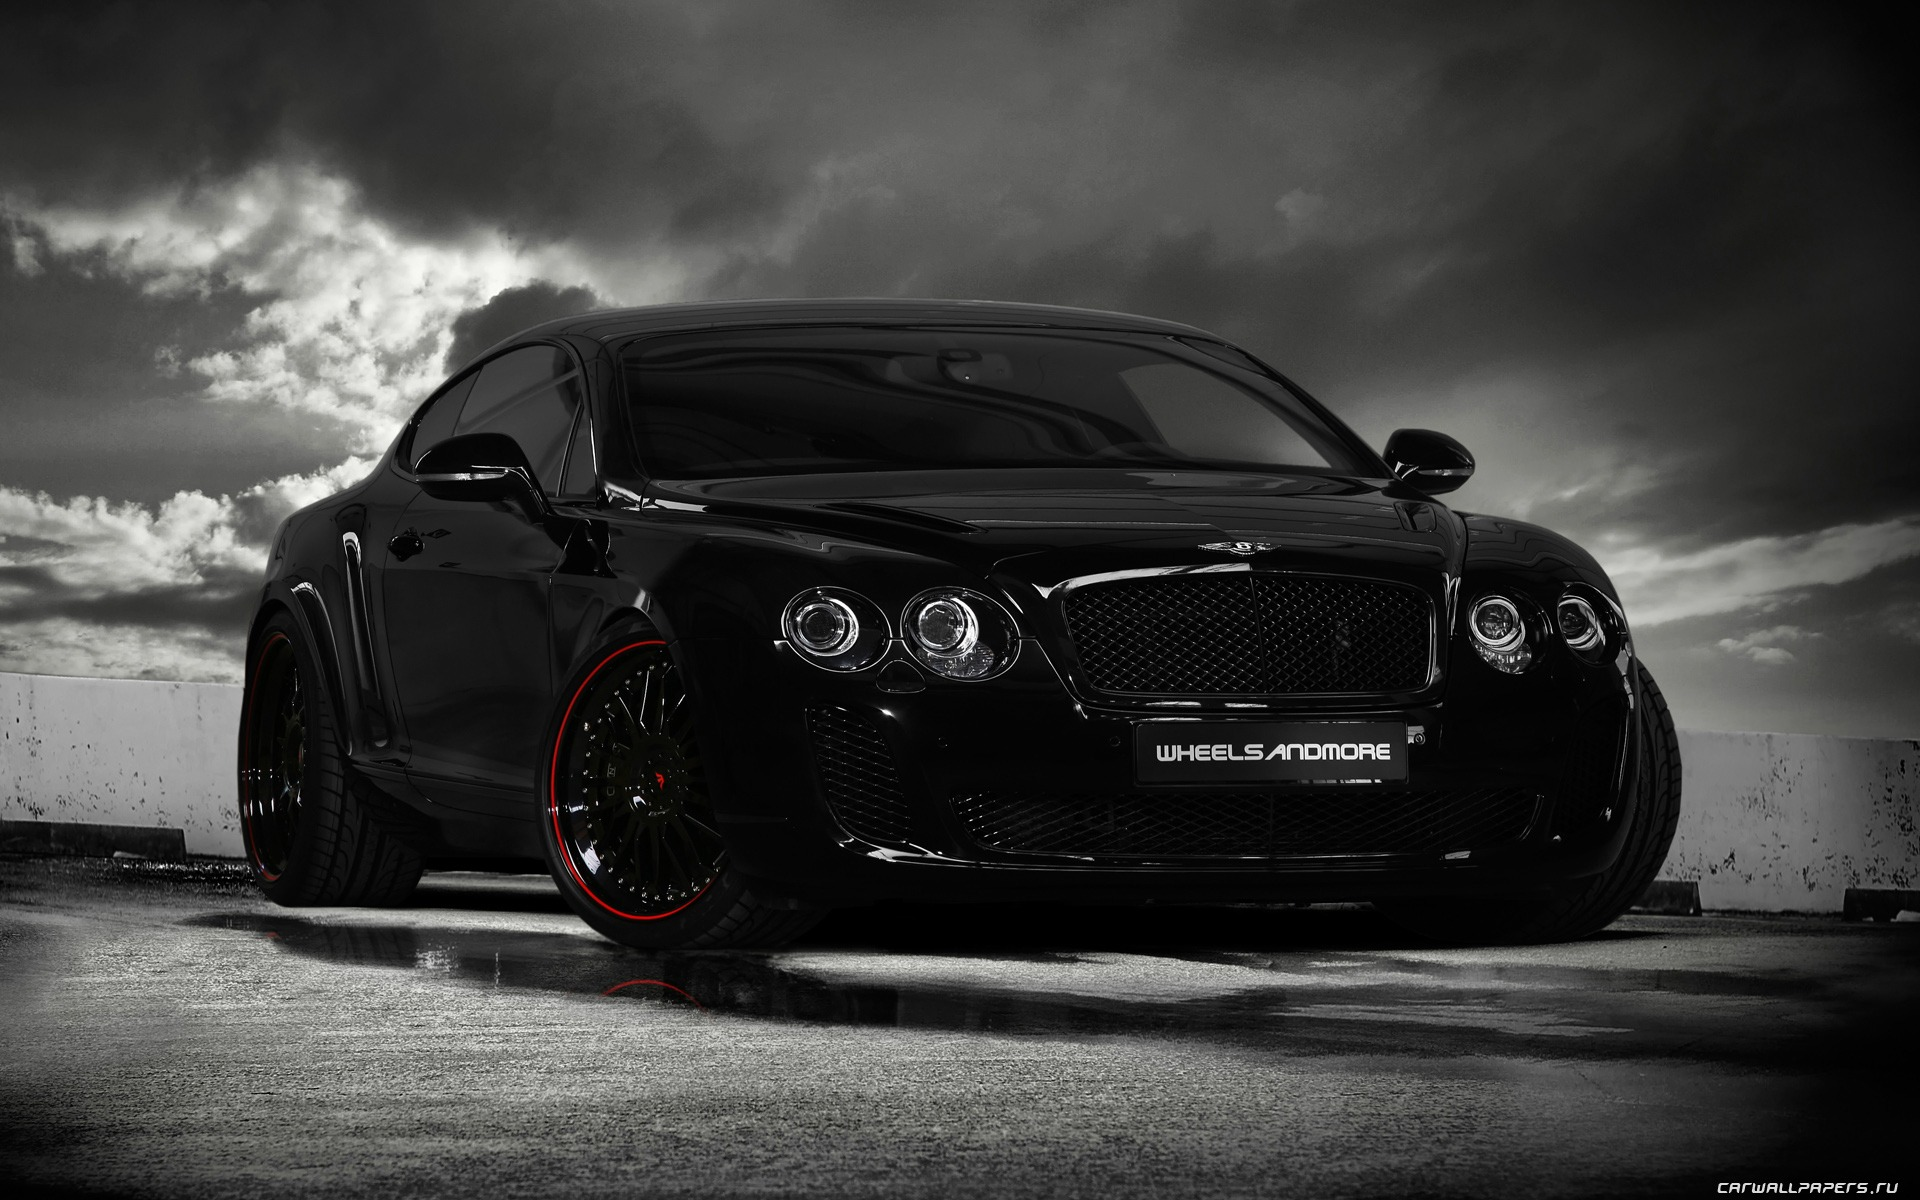 Wheelsandmore Bentley Continental Ultrasports 702 - 2010 HD обои #3 - 1920x1200